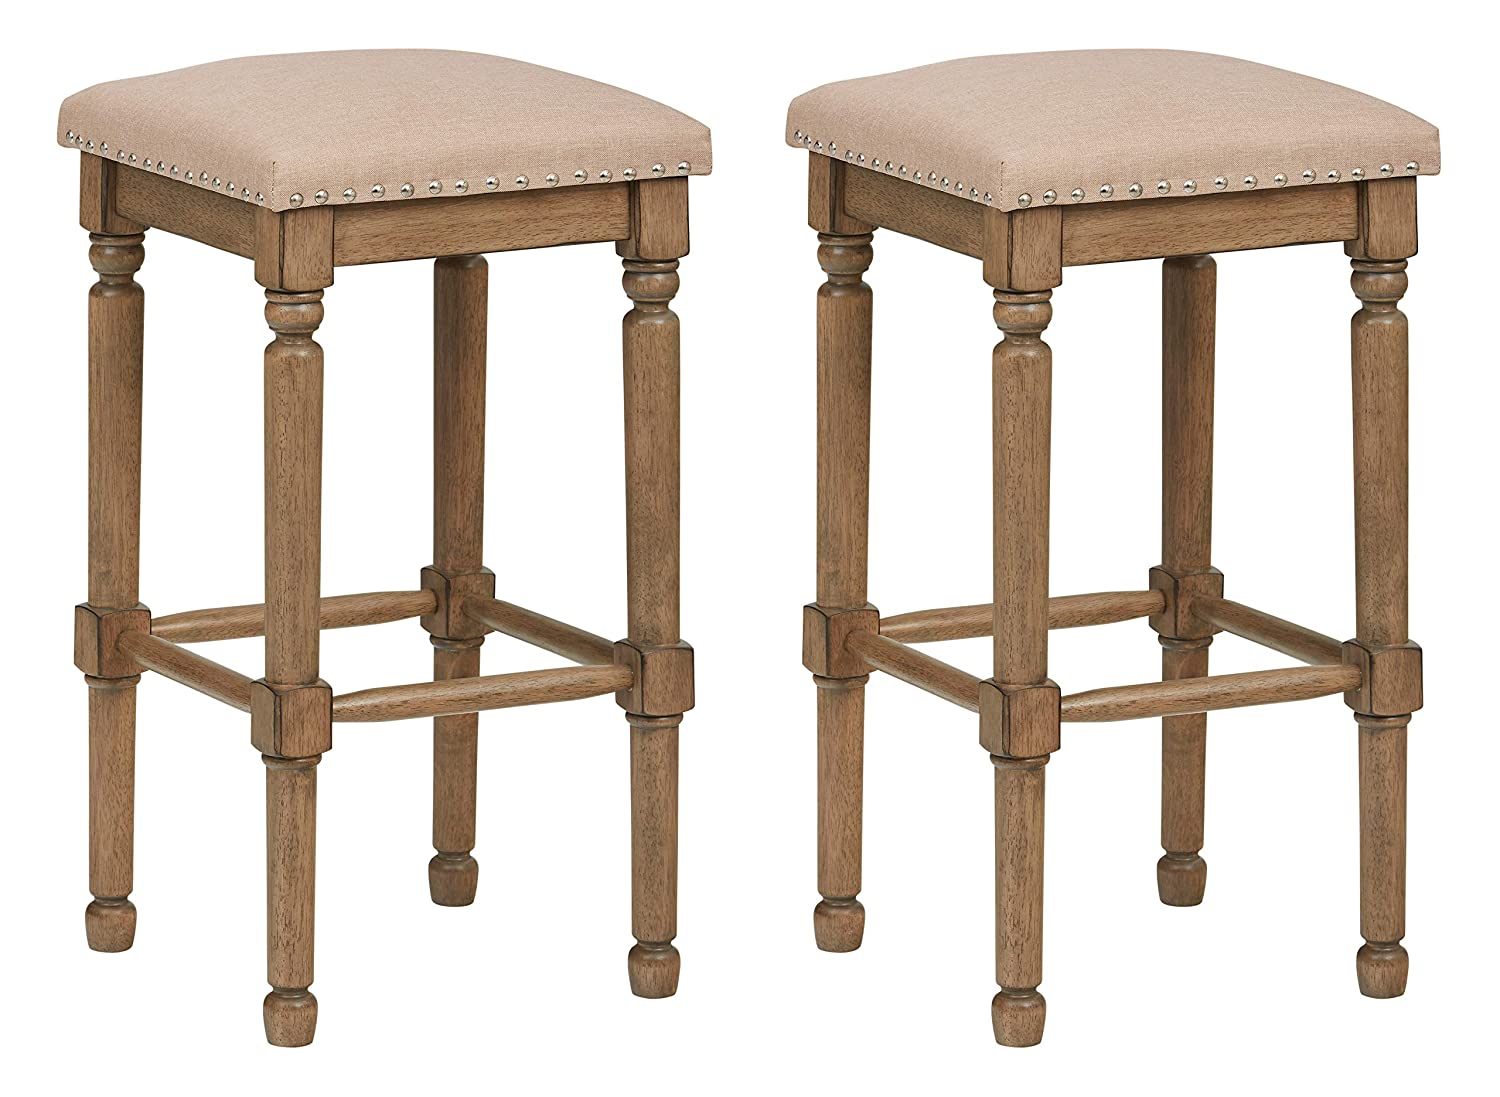 Ravenna Home Ferris Nailhead Wood Detailed Bar Stool, 29.3  H, Weathered Oak with Linen Fabric (2 Pack)